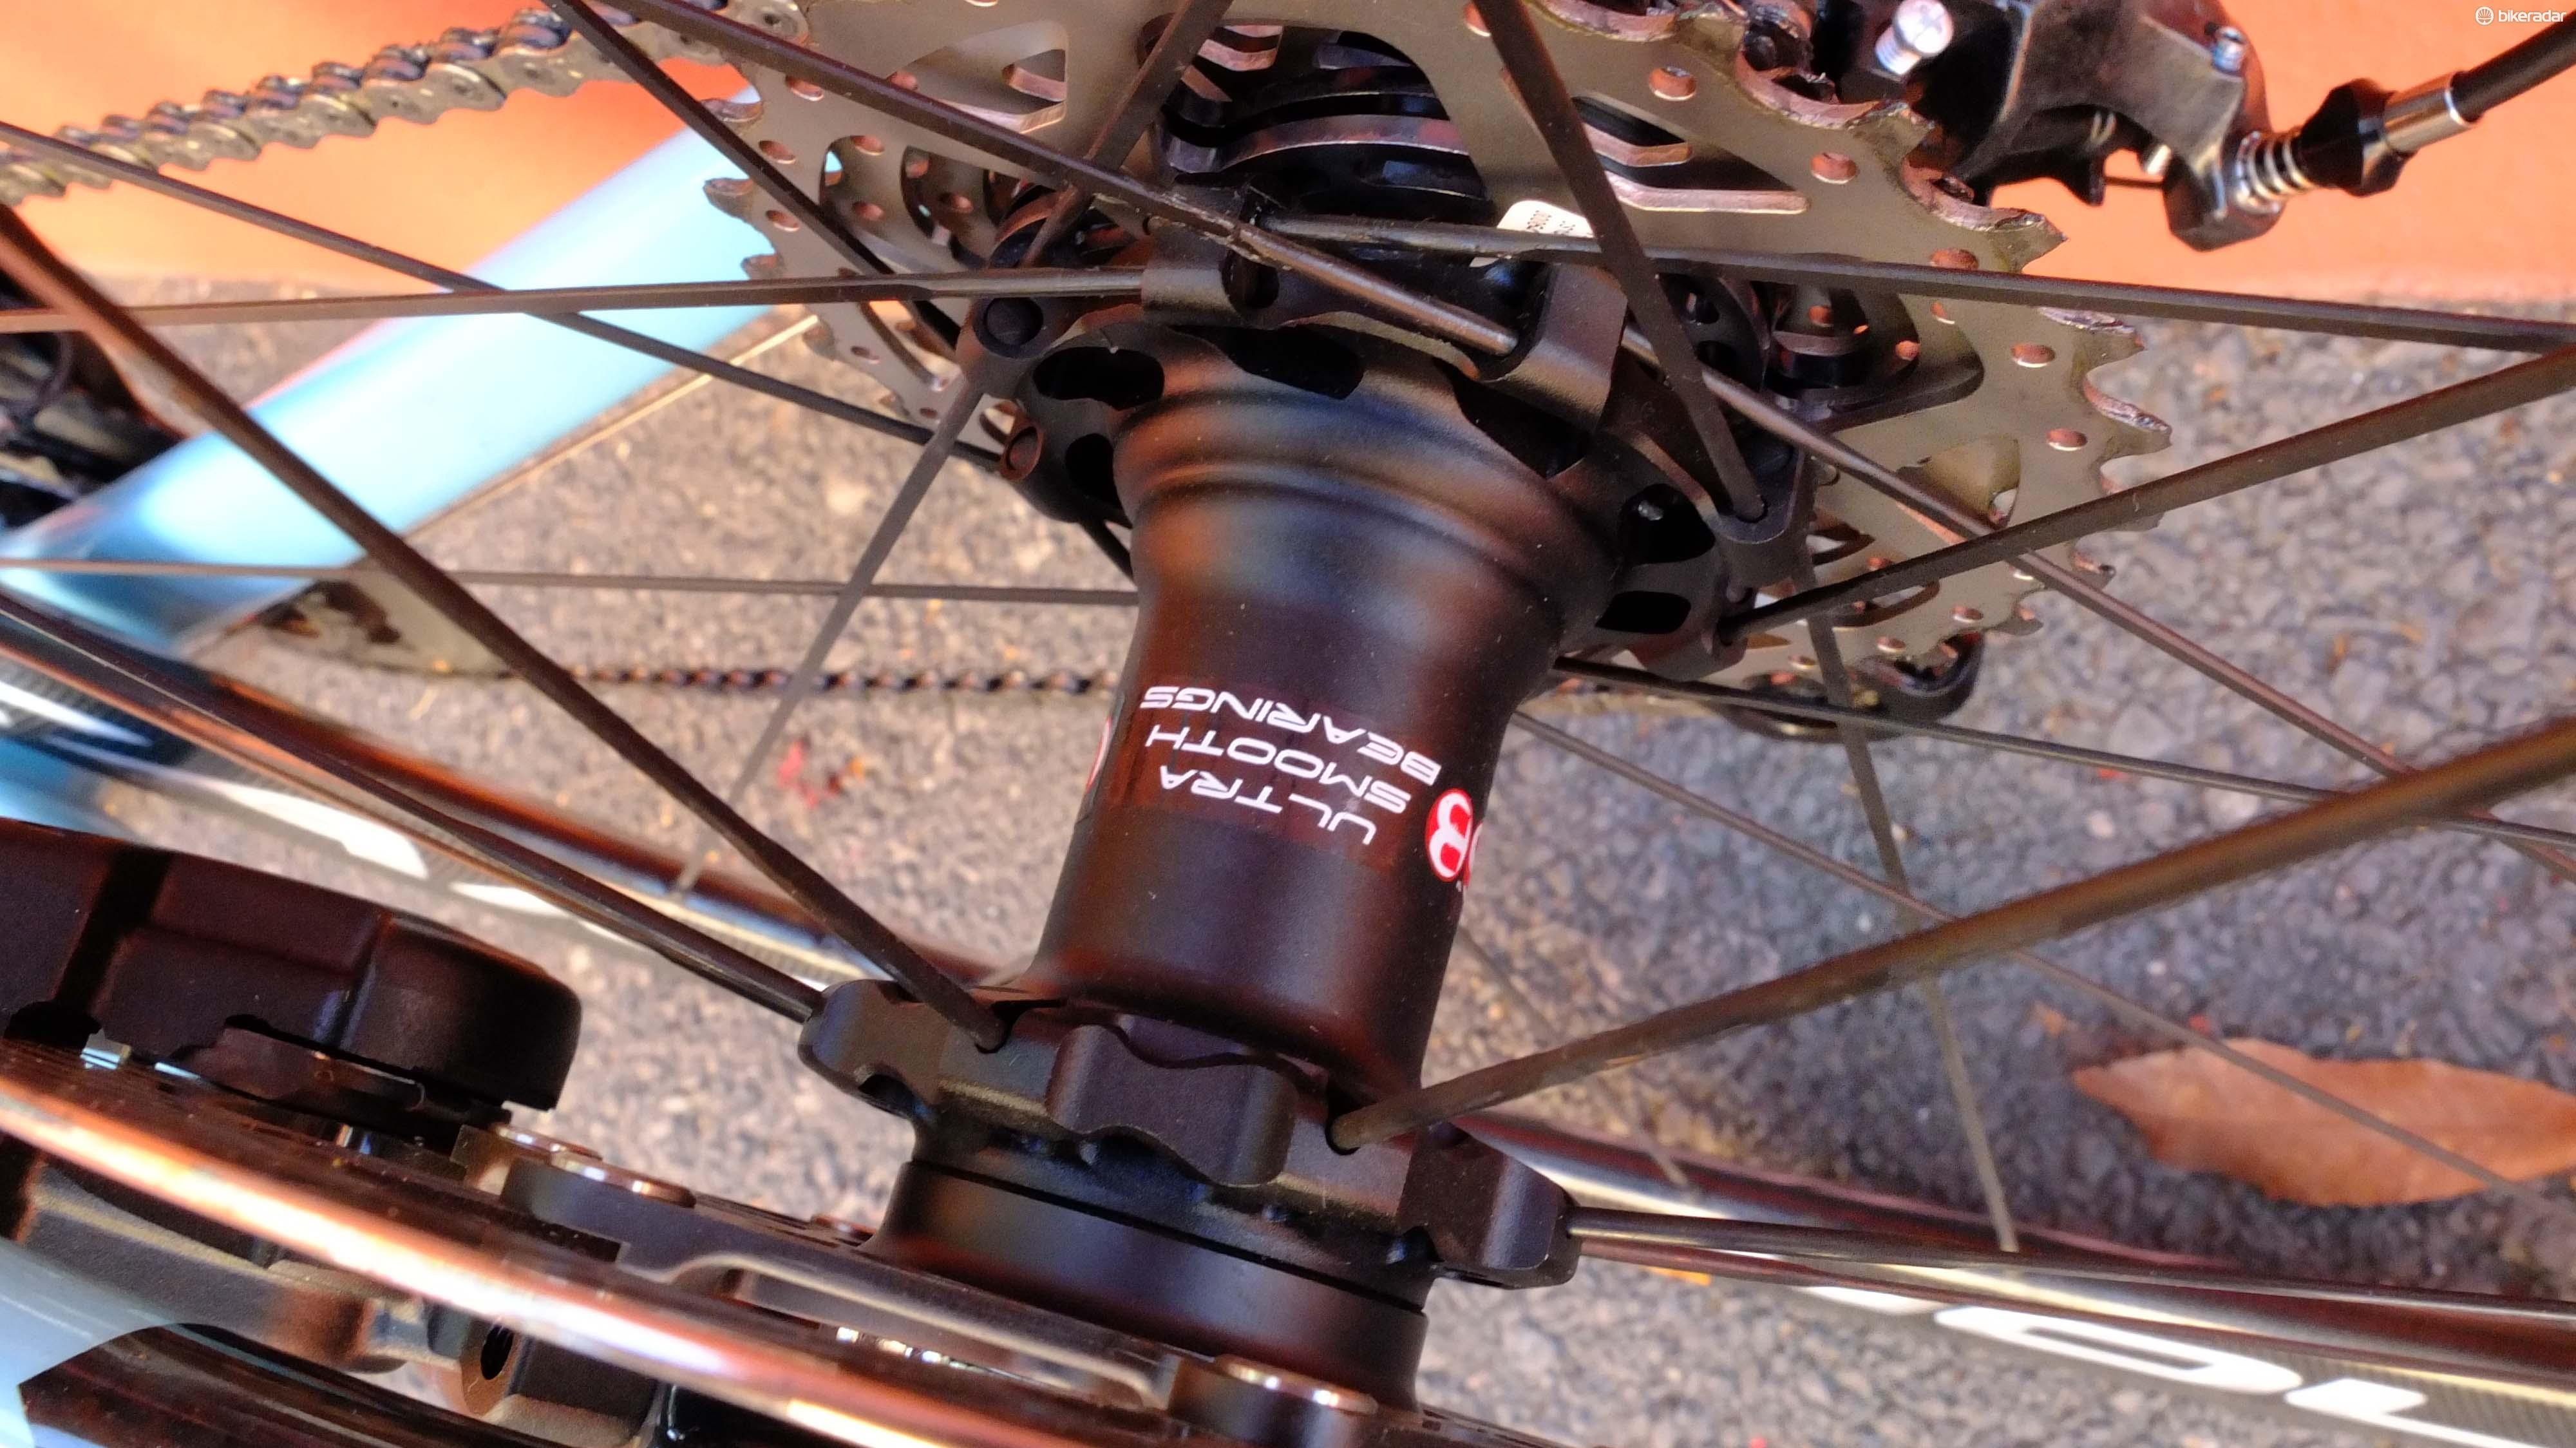 All the new Bora wheelsets come with USB ceramic bearings as standard